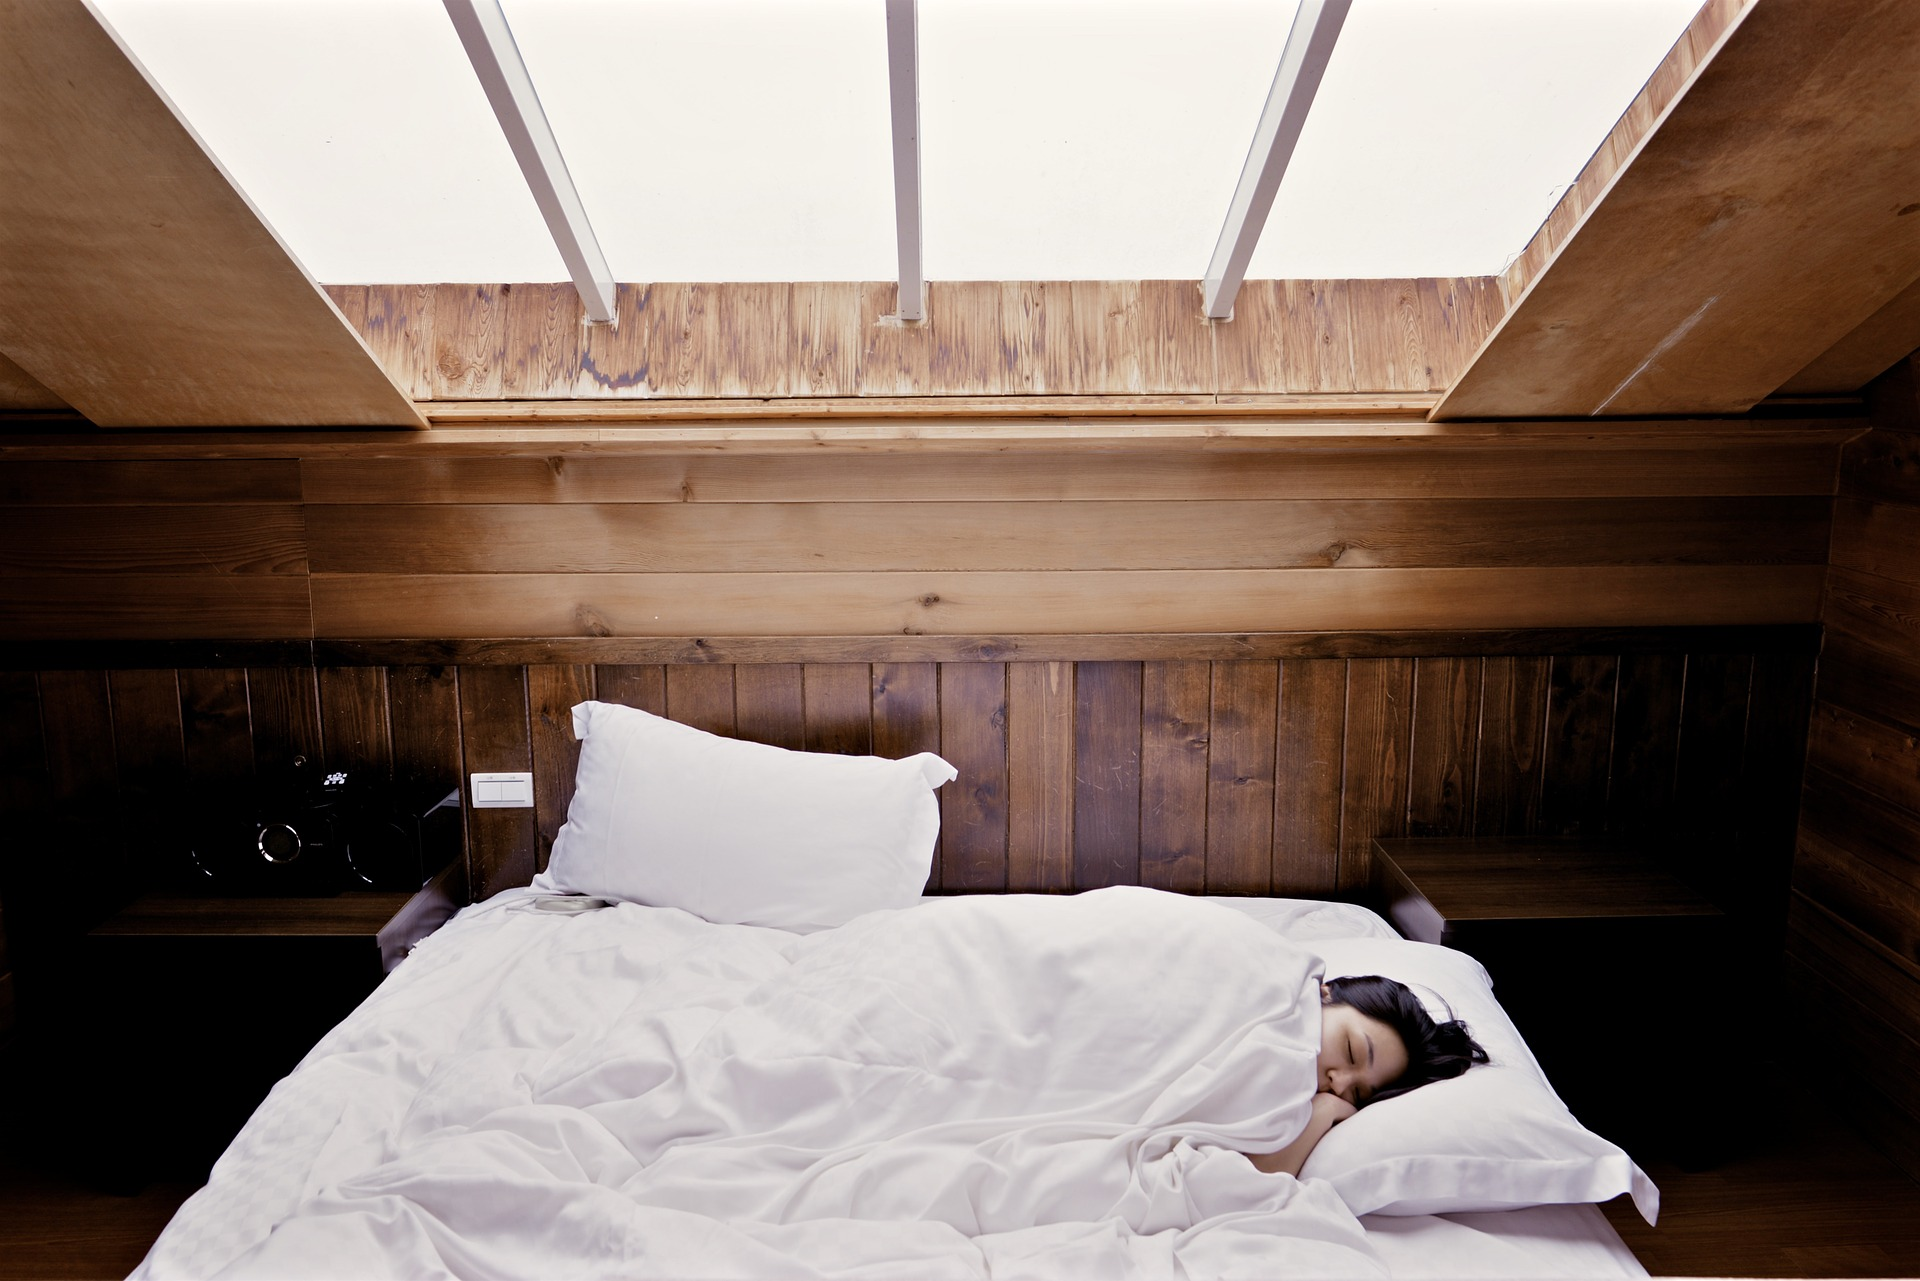 Woman asleep with vaulted skylight in her living quarters